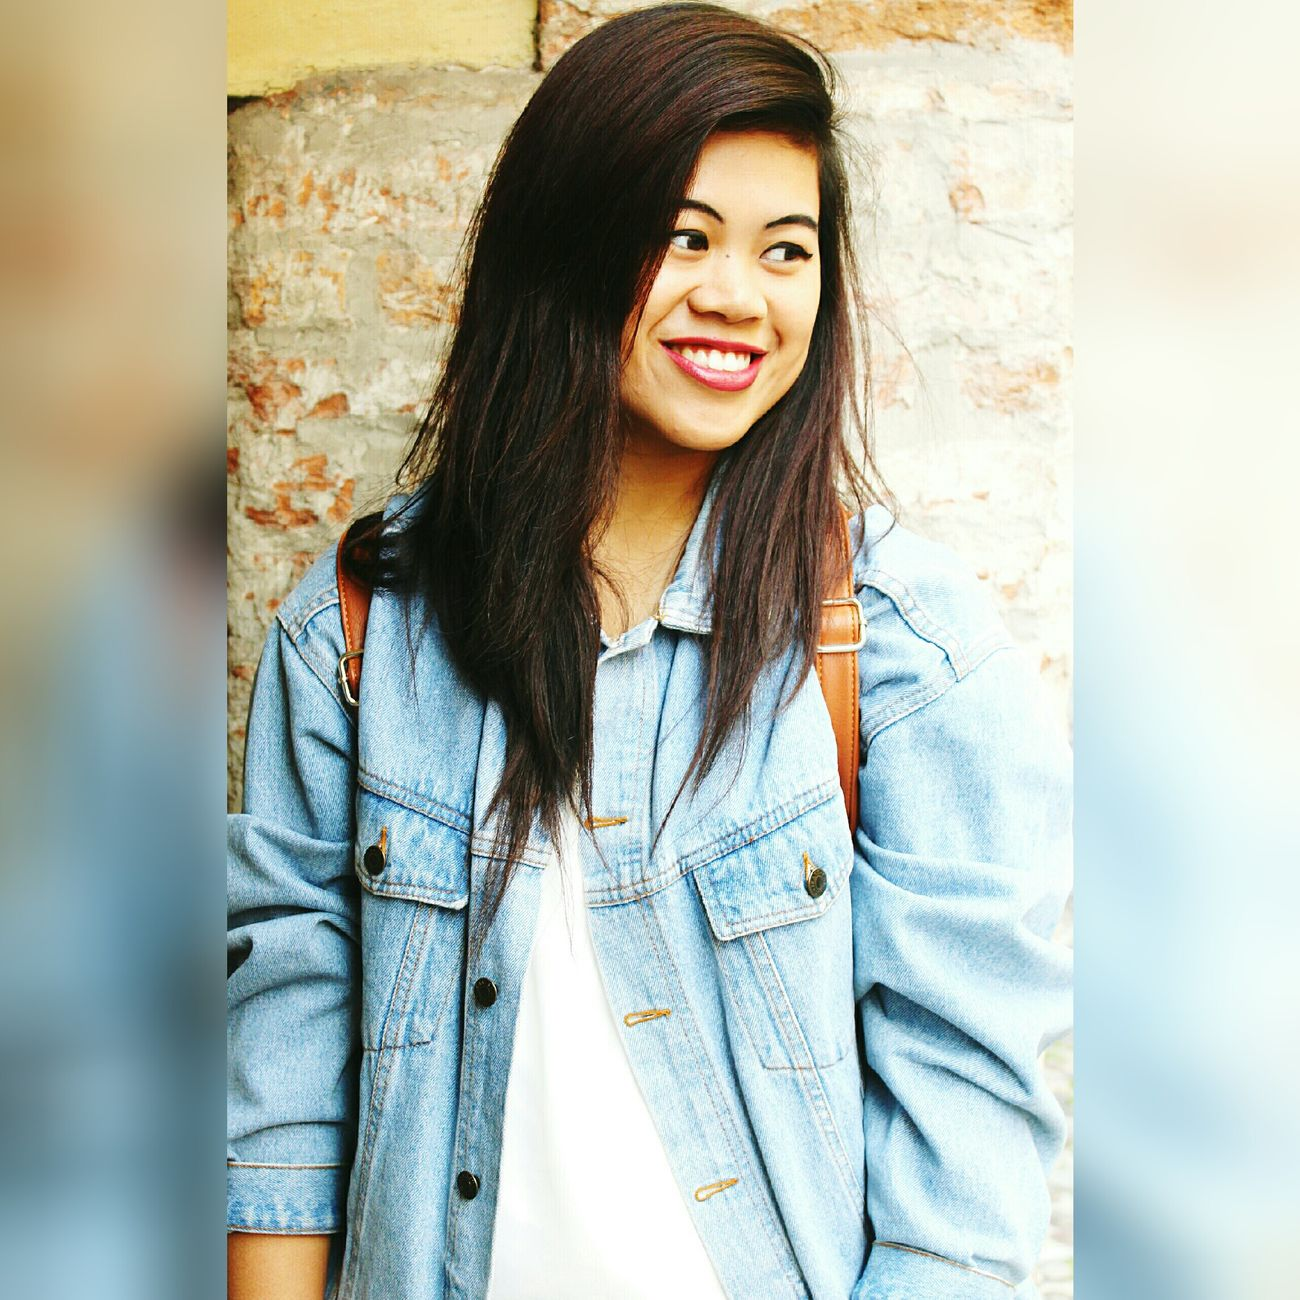 Smile❤ Let's Go Taking Photos EyeEm Best Shots Italiangirl Asiangirl That's Me! Snap:barradas_mary98 Hello World EyeEm Best Edits Dream Crazy Swag Picturial Love Paradise Life